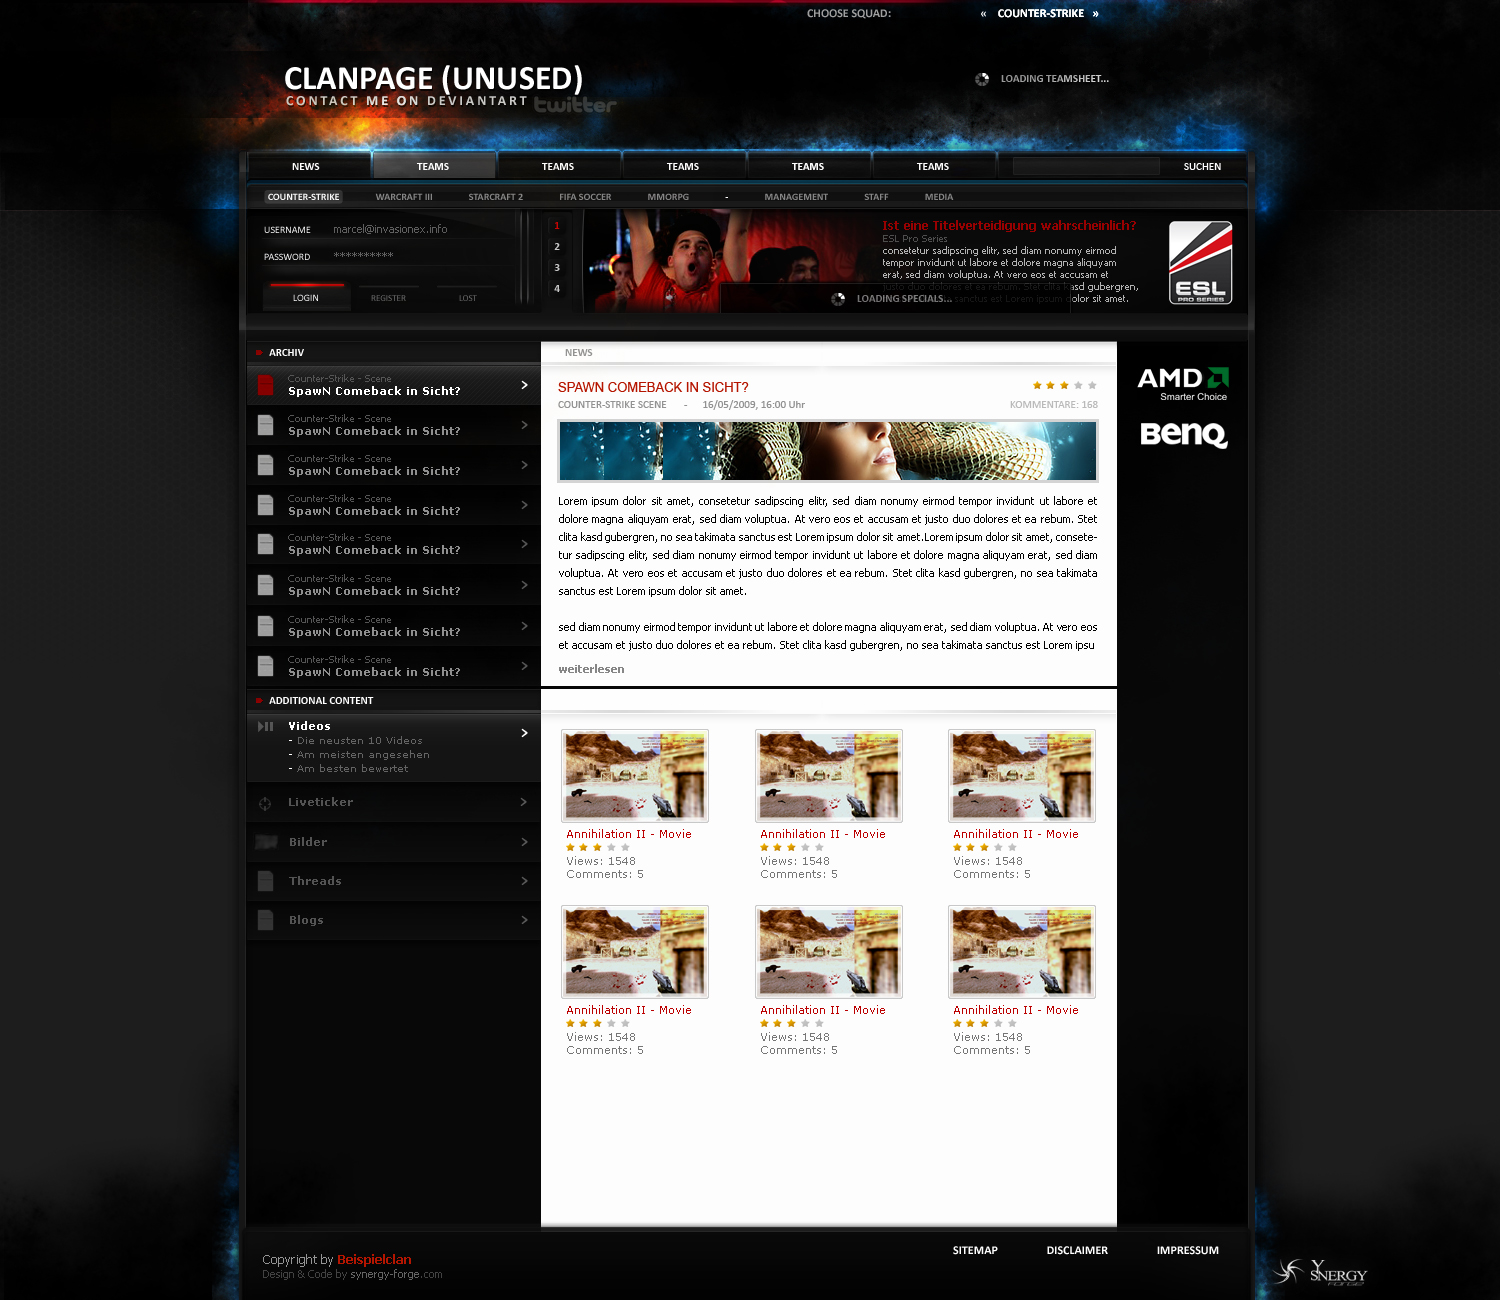 eSport Website 4 sale by overcrock